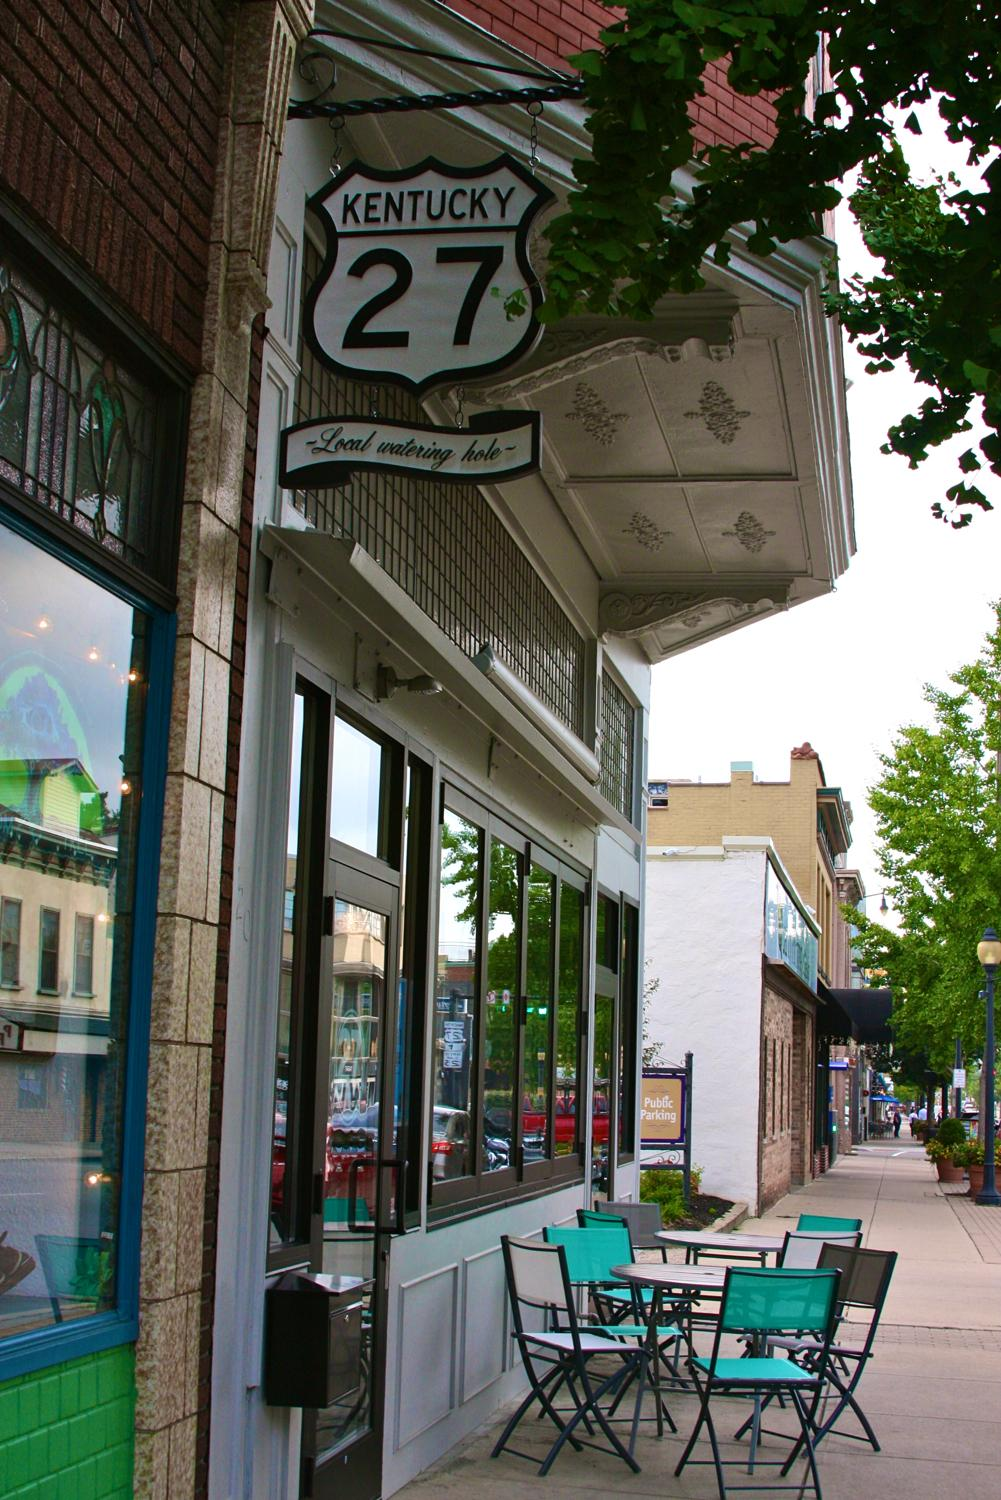 27 Bar + Kitchen is a Newport restaurant specializing in excellent American cuisine and caters to the brunch and dinner crowds. Additionally, its bar includes craft cocktails and beer, as well as coffee. / ADDRESS: 720 Monmouth Street, Newport, KY 41071 // Image: Molly Paz